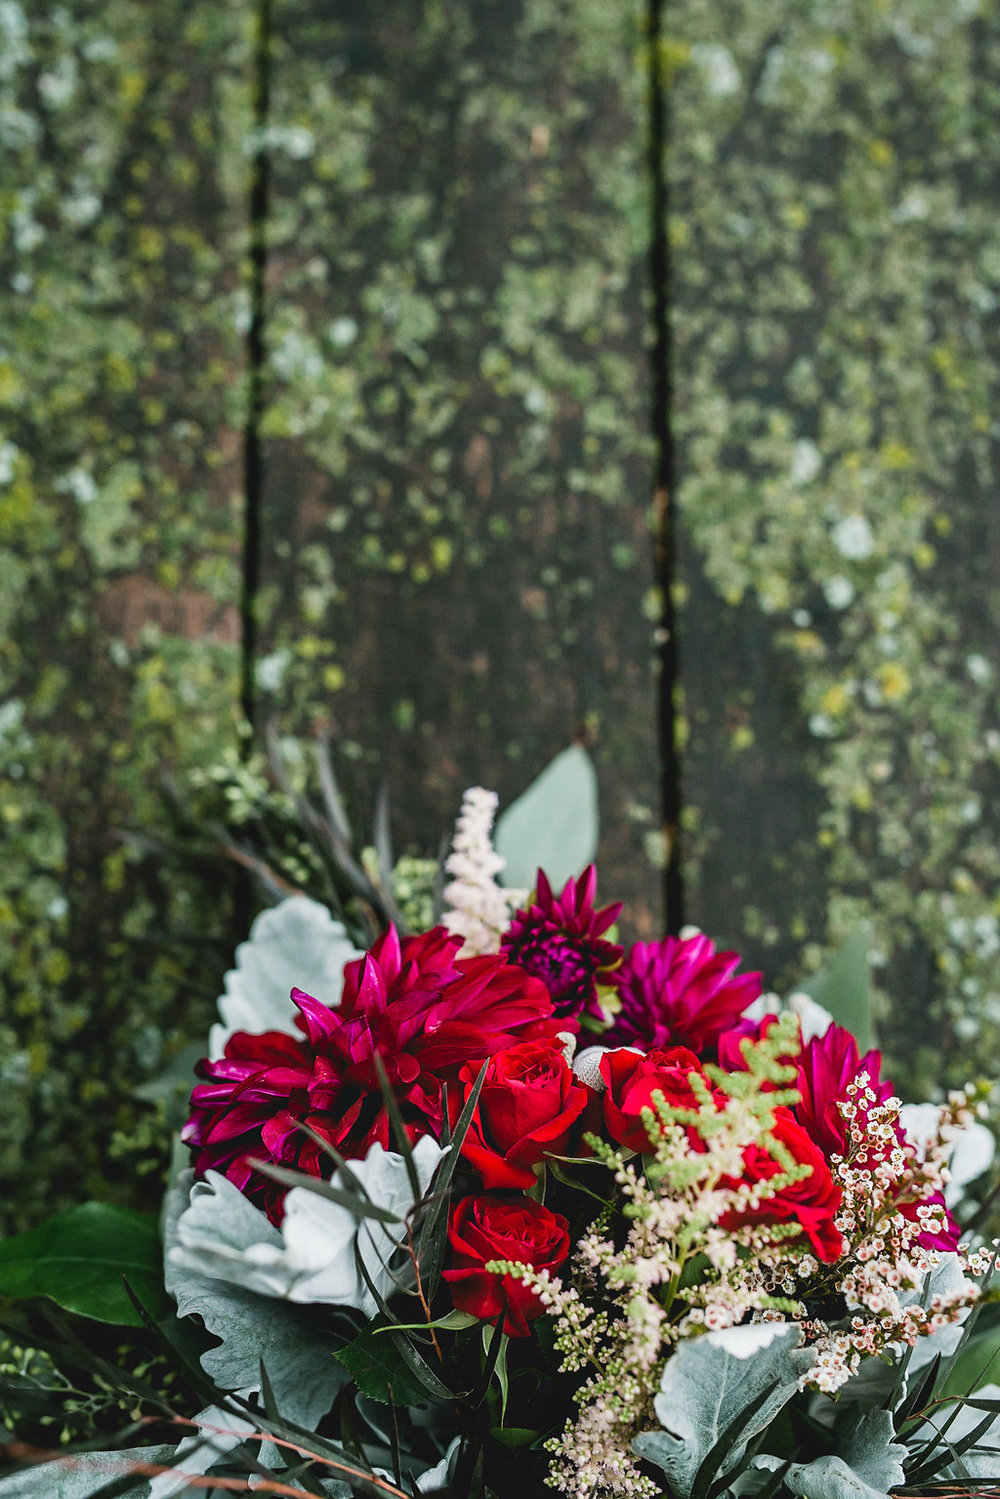 Leslee & Billy | Legacy Hill Farm Wedding | Aqua Fox Photography | A Vintage Touch Wedding Planning | Sixpence Events & Planning day of coordinating | Cutting Garden flowers with dusty miller and astilbe